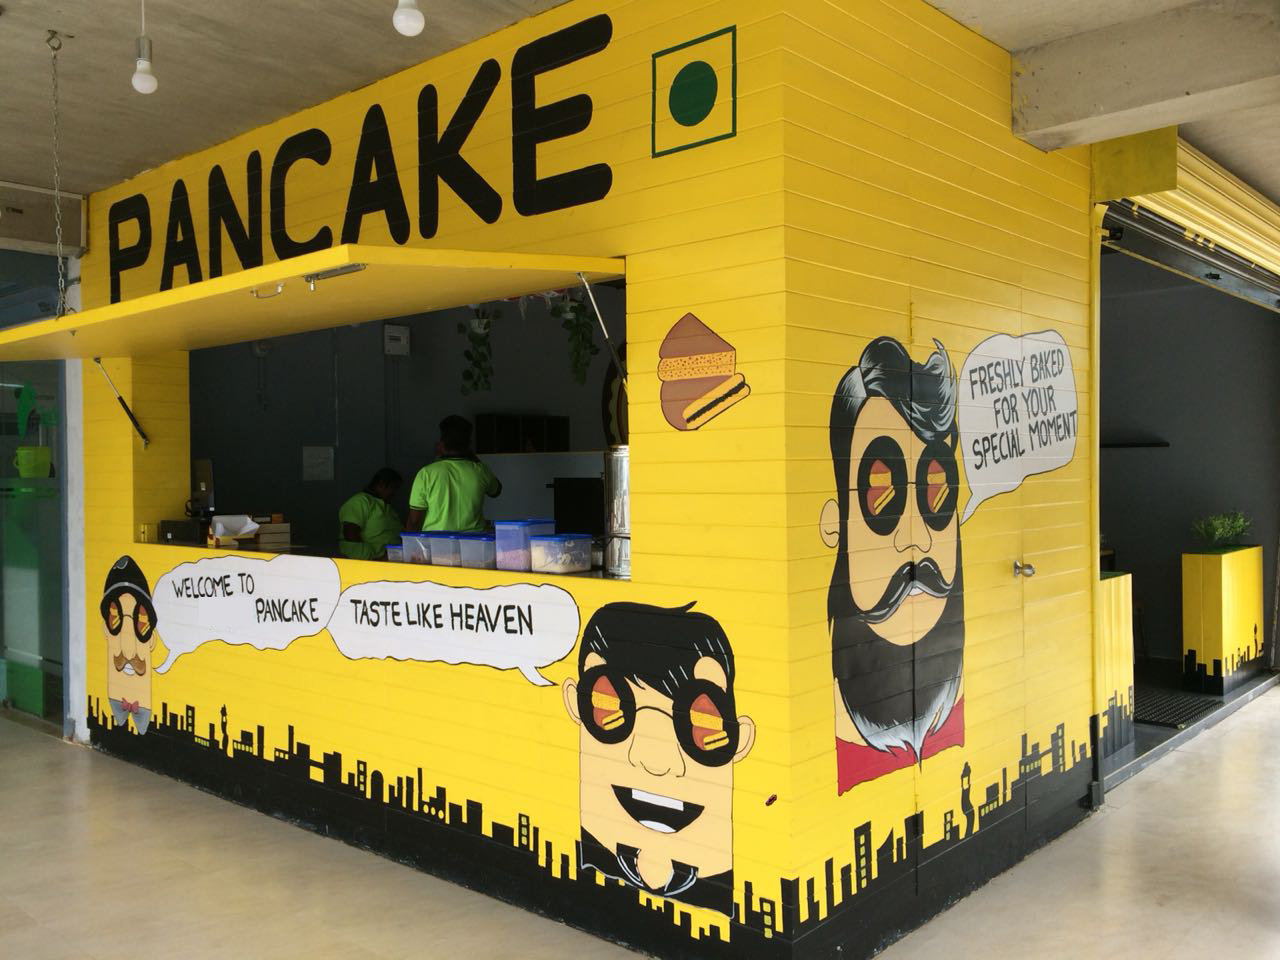 New Concept First Indonesian Style Pancake Shop for Sale in Chennai